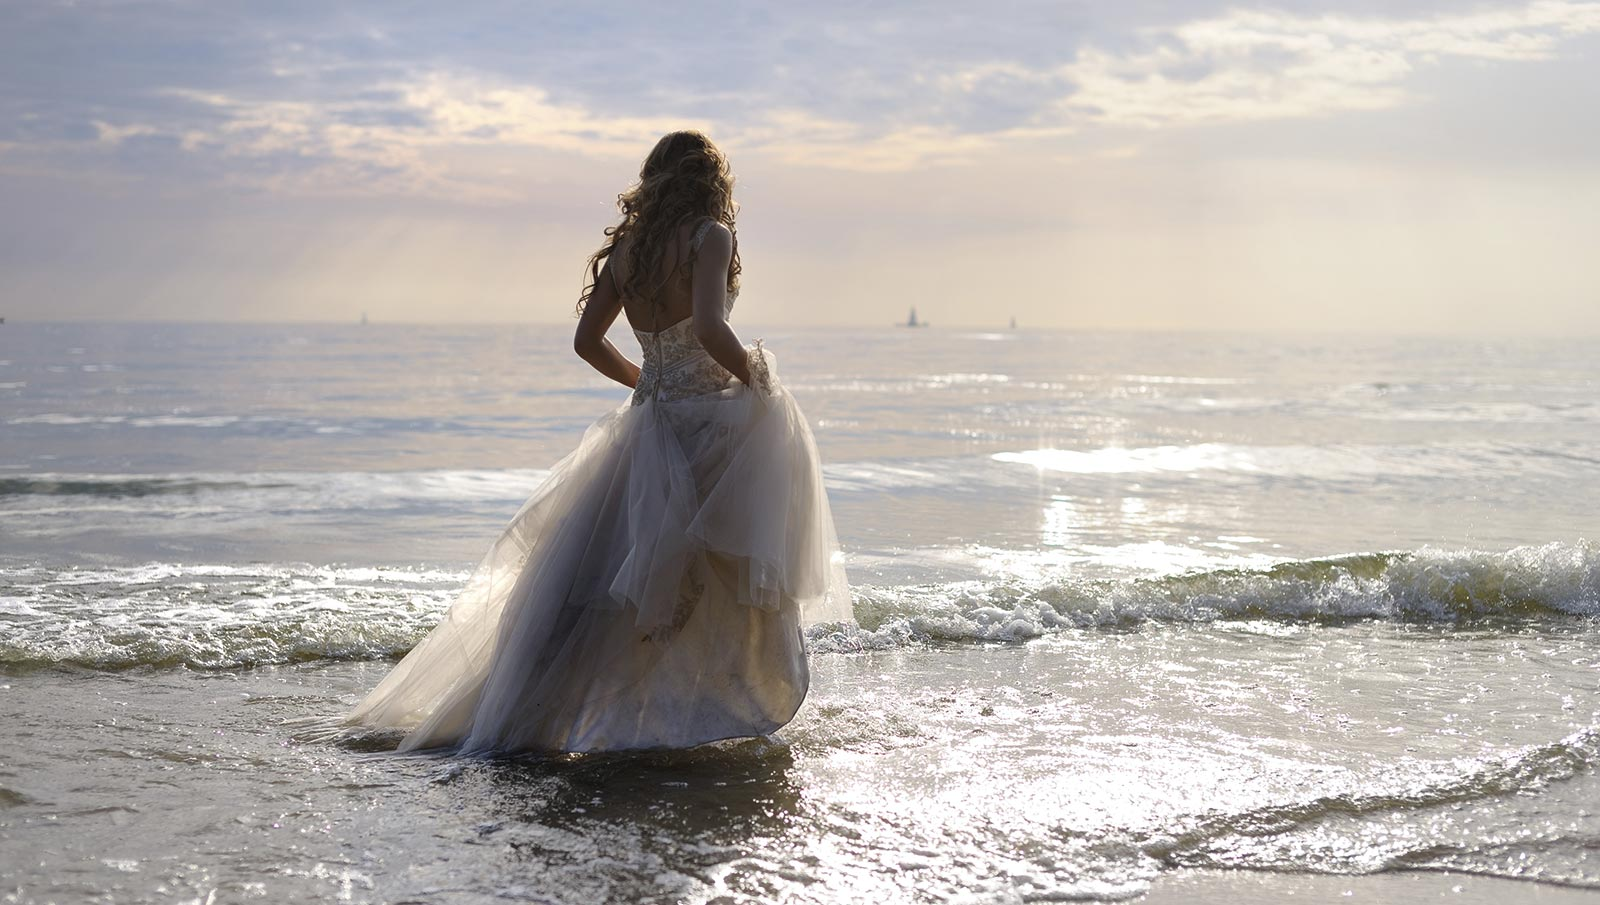 Your wedding overlooking the sea